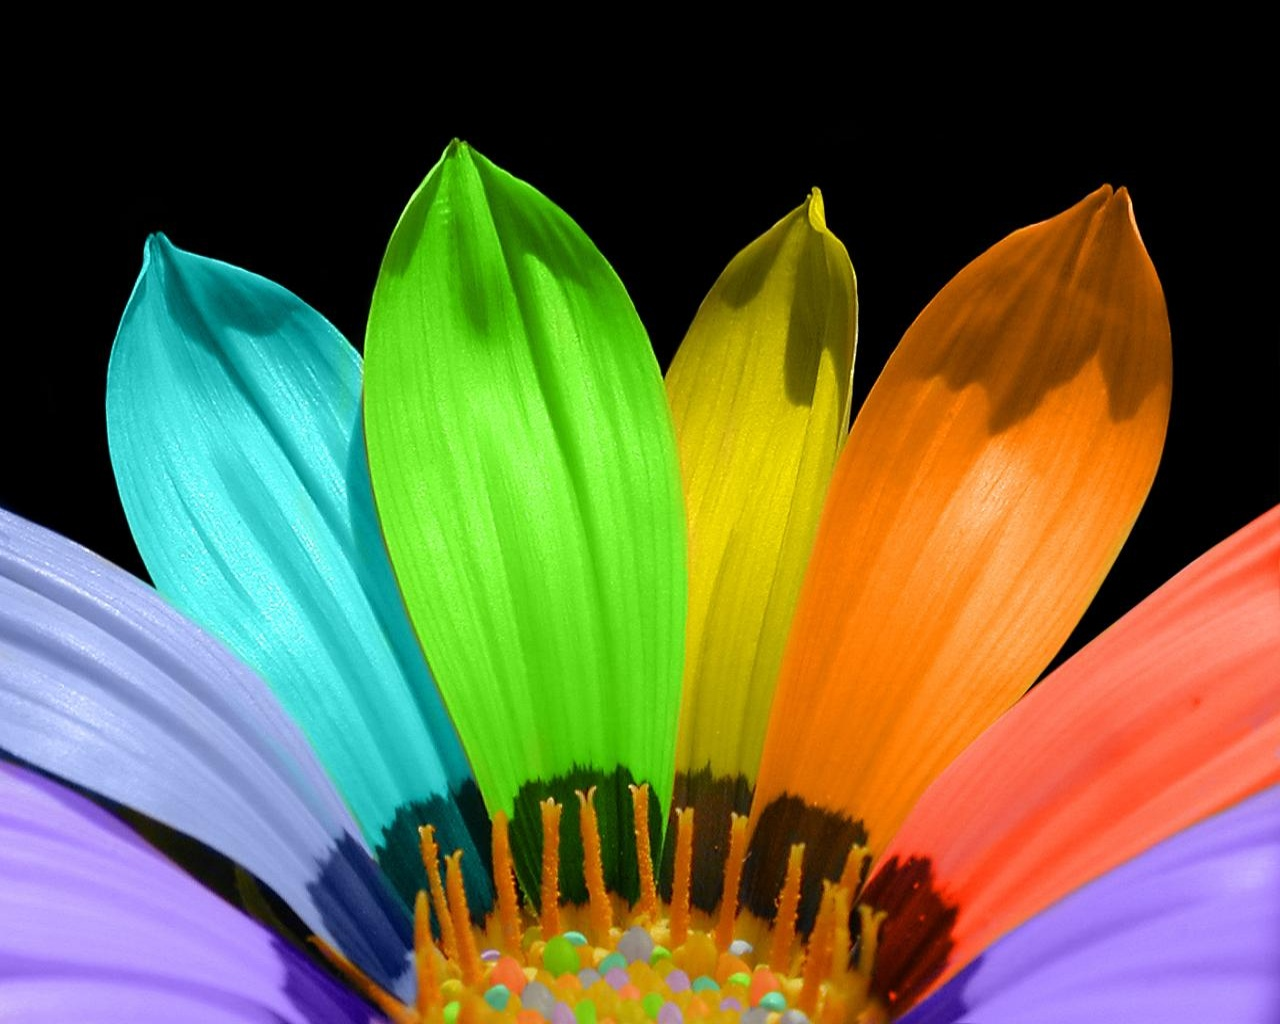 flower color petals wallpapers in jpg format for free download